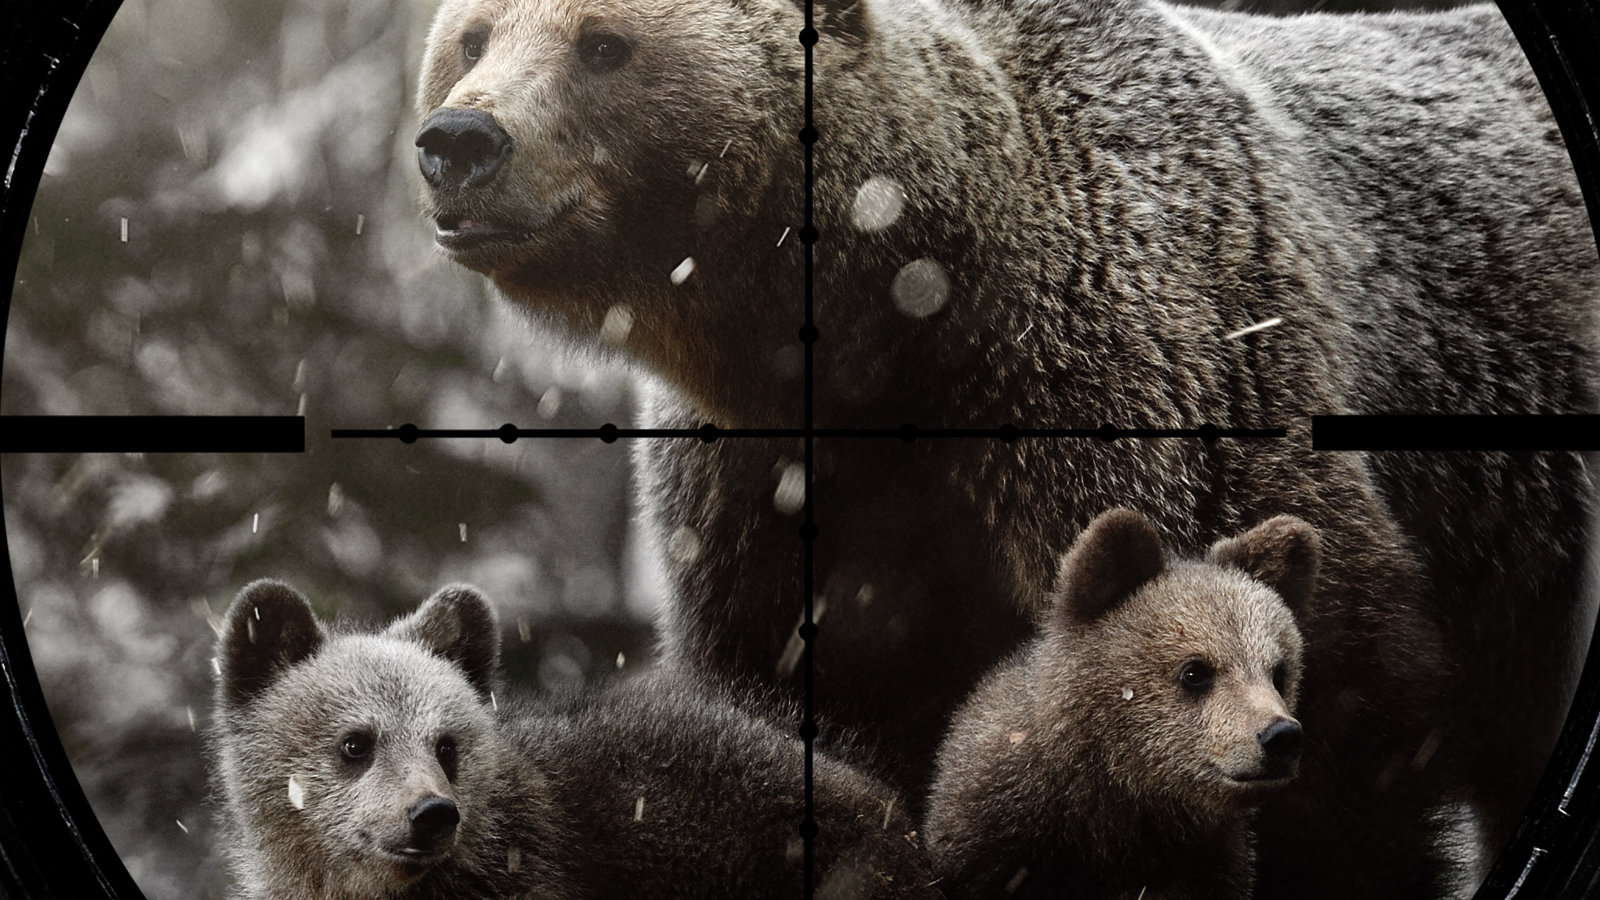 Kristy Tibbles kristy.tibbles@alaska.gov Executive Director, Board of Game: I object to the Exception 1 and 2 in 5 AAC 92.260 which allows for the taking of bear cubs and female bears with cubs.